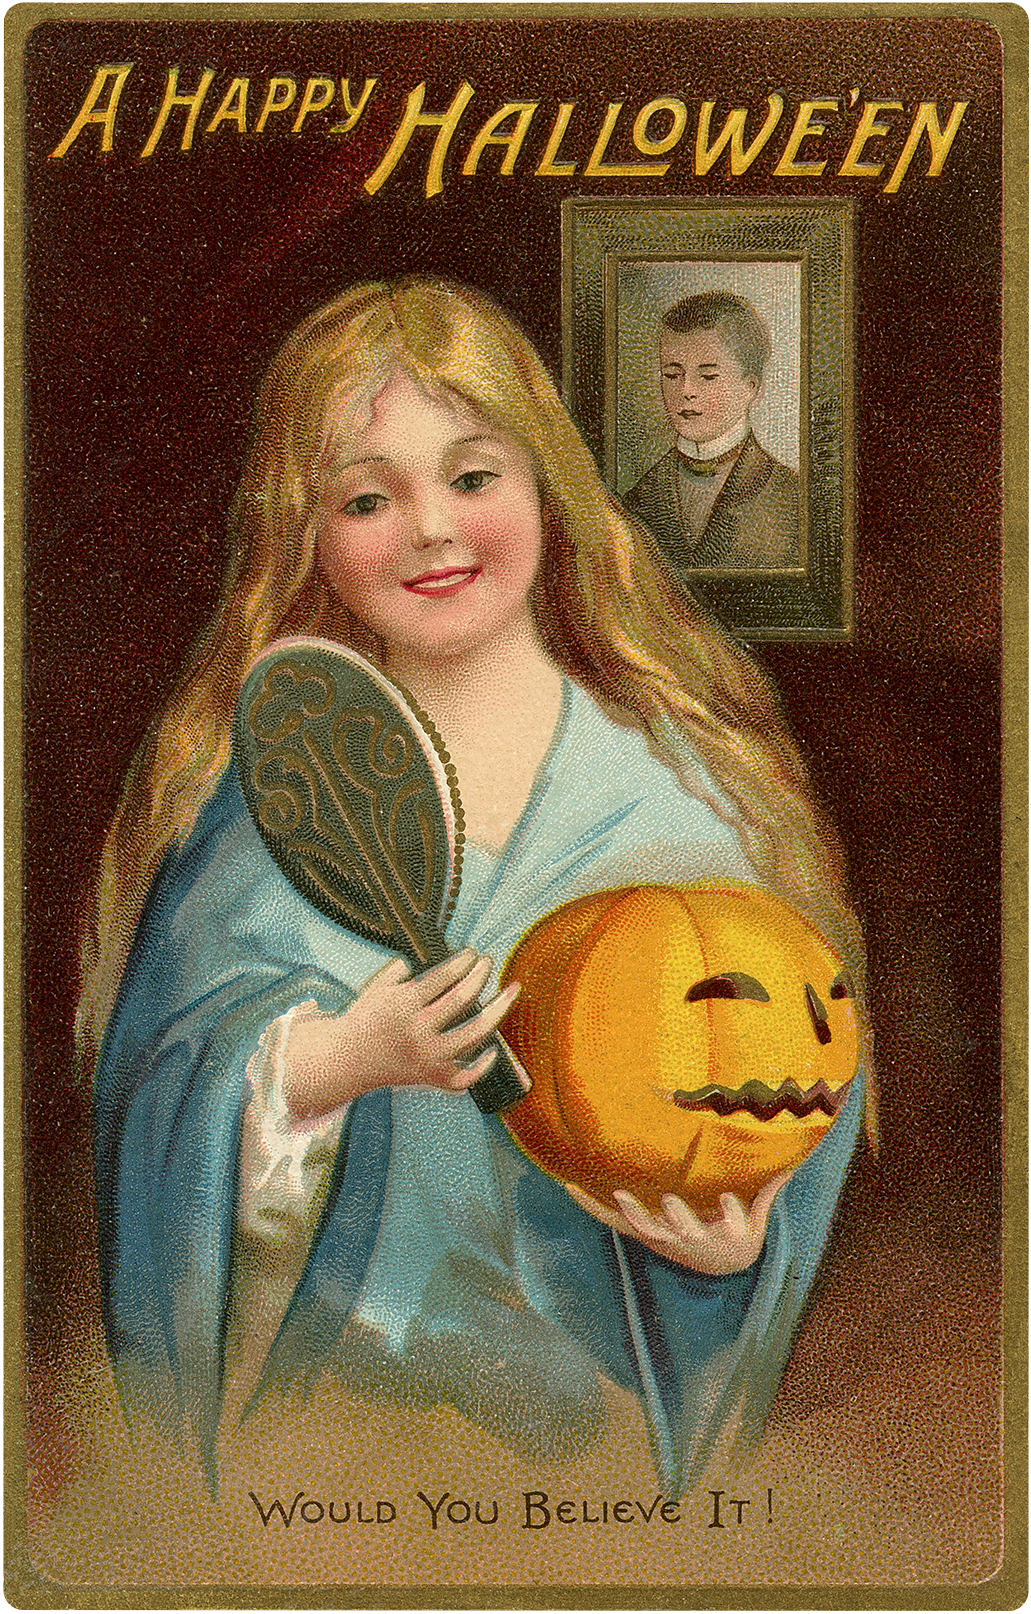 Happy Halloween Cute Girl Holding Pumpkin Postcard!